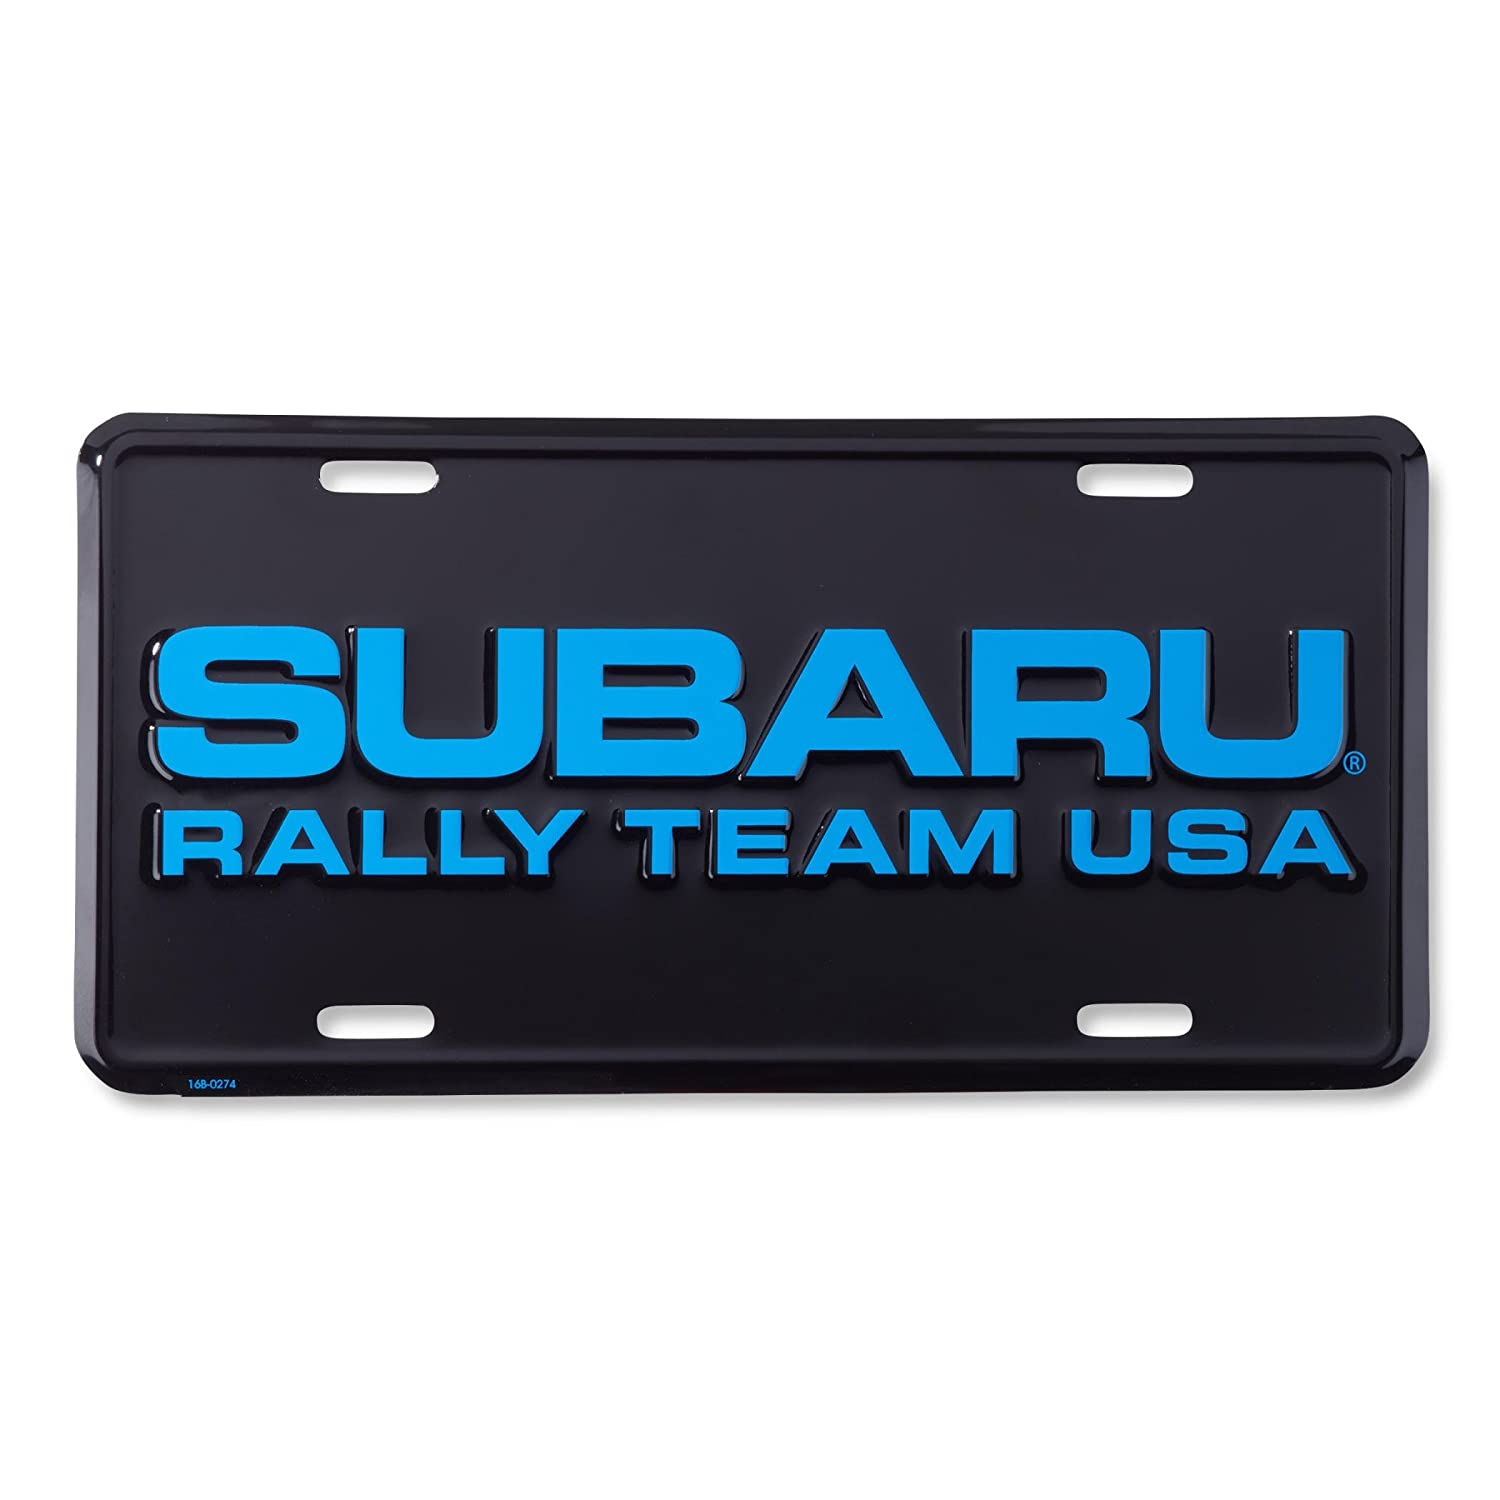 Subaru World Rally Team Usa Official License Plate Wrx Name Of The In Born To Race Sti Jdm Impreza Genuine Sports Outdoors